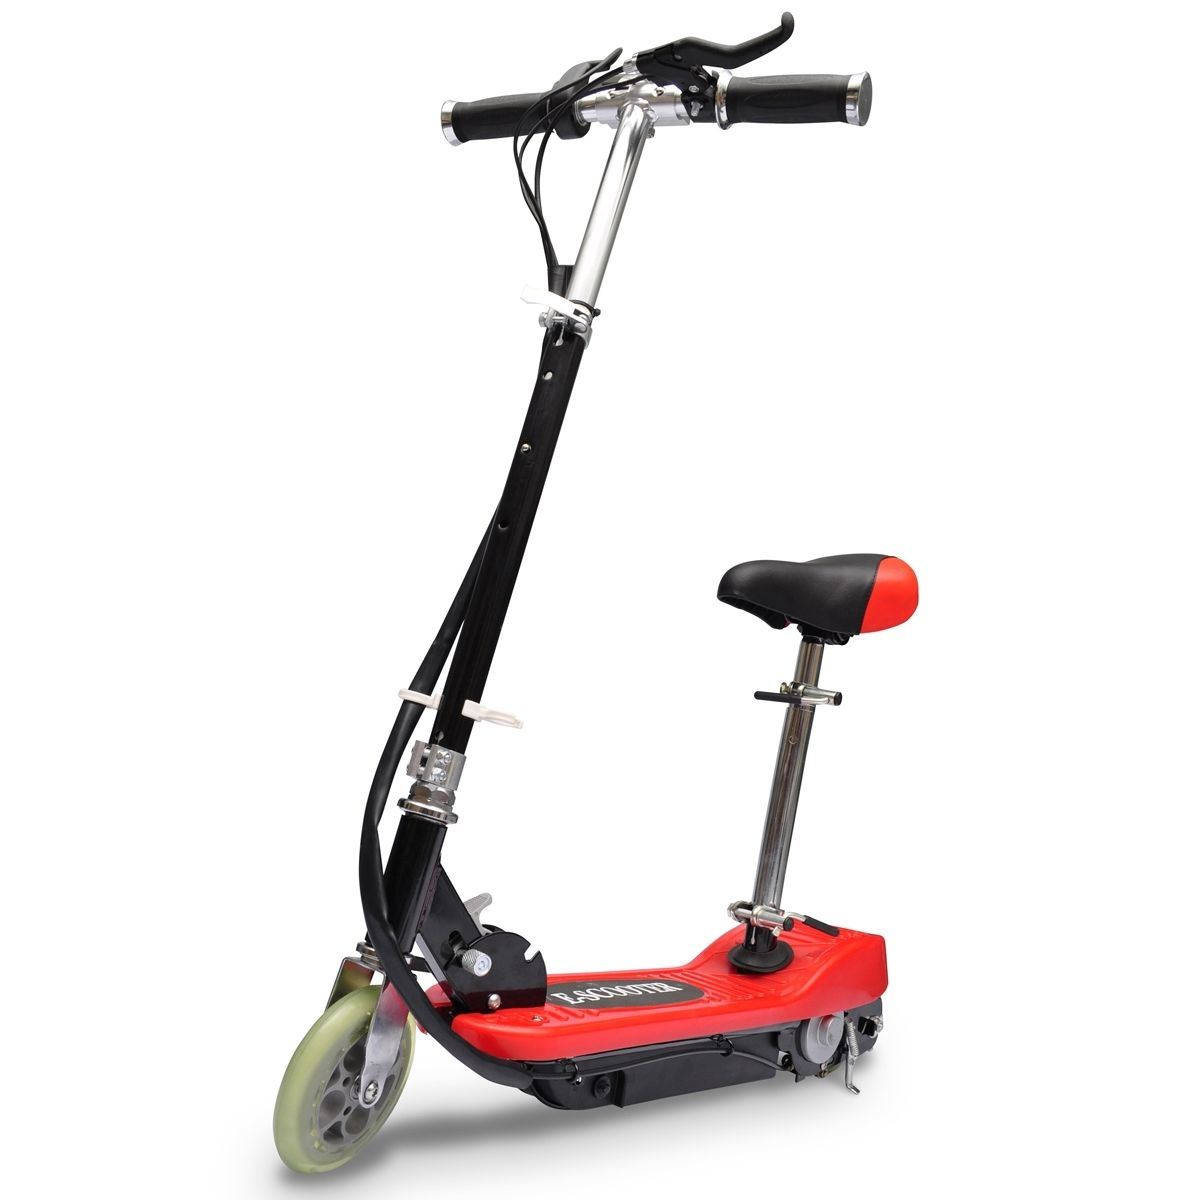 New electric scooter bike for teenagers 120w with seat for Motorized scooters for teenager